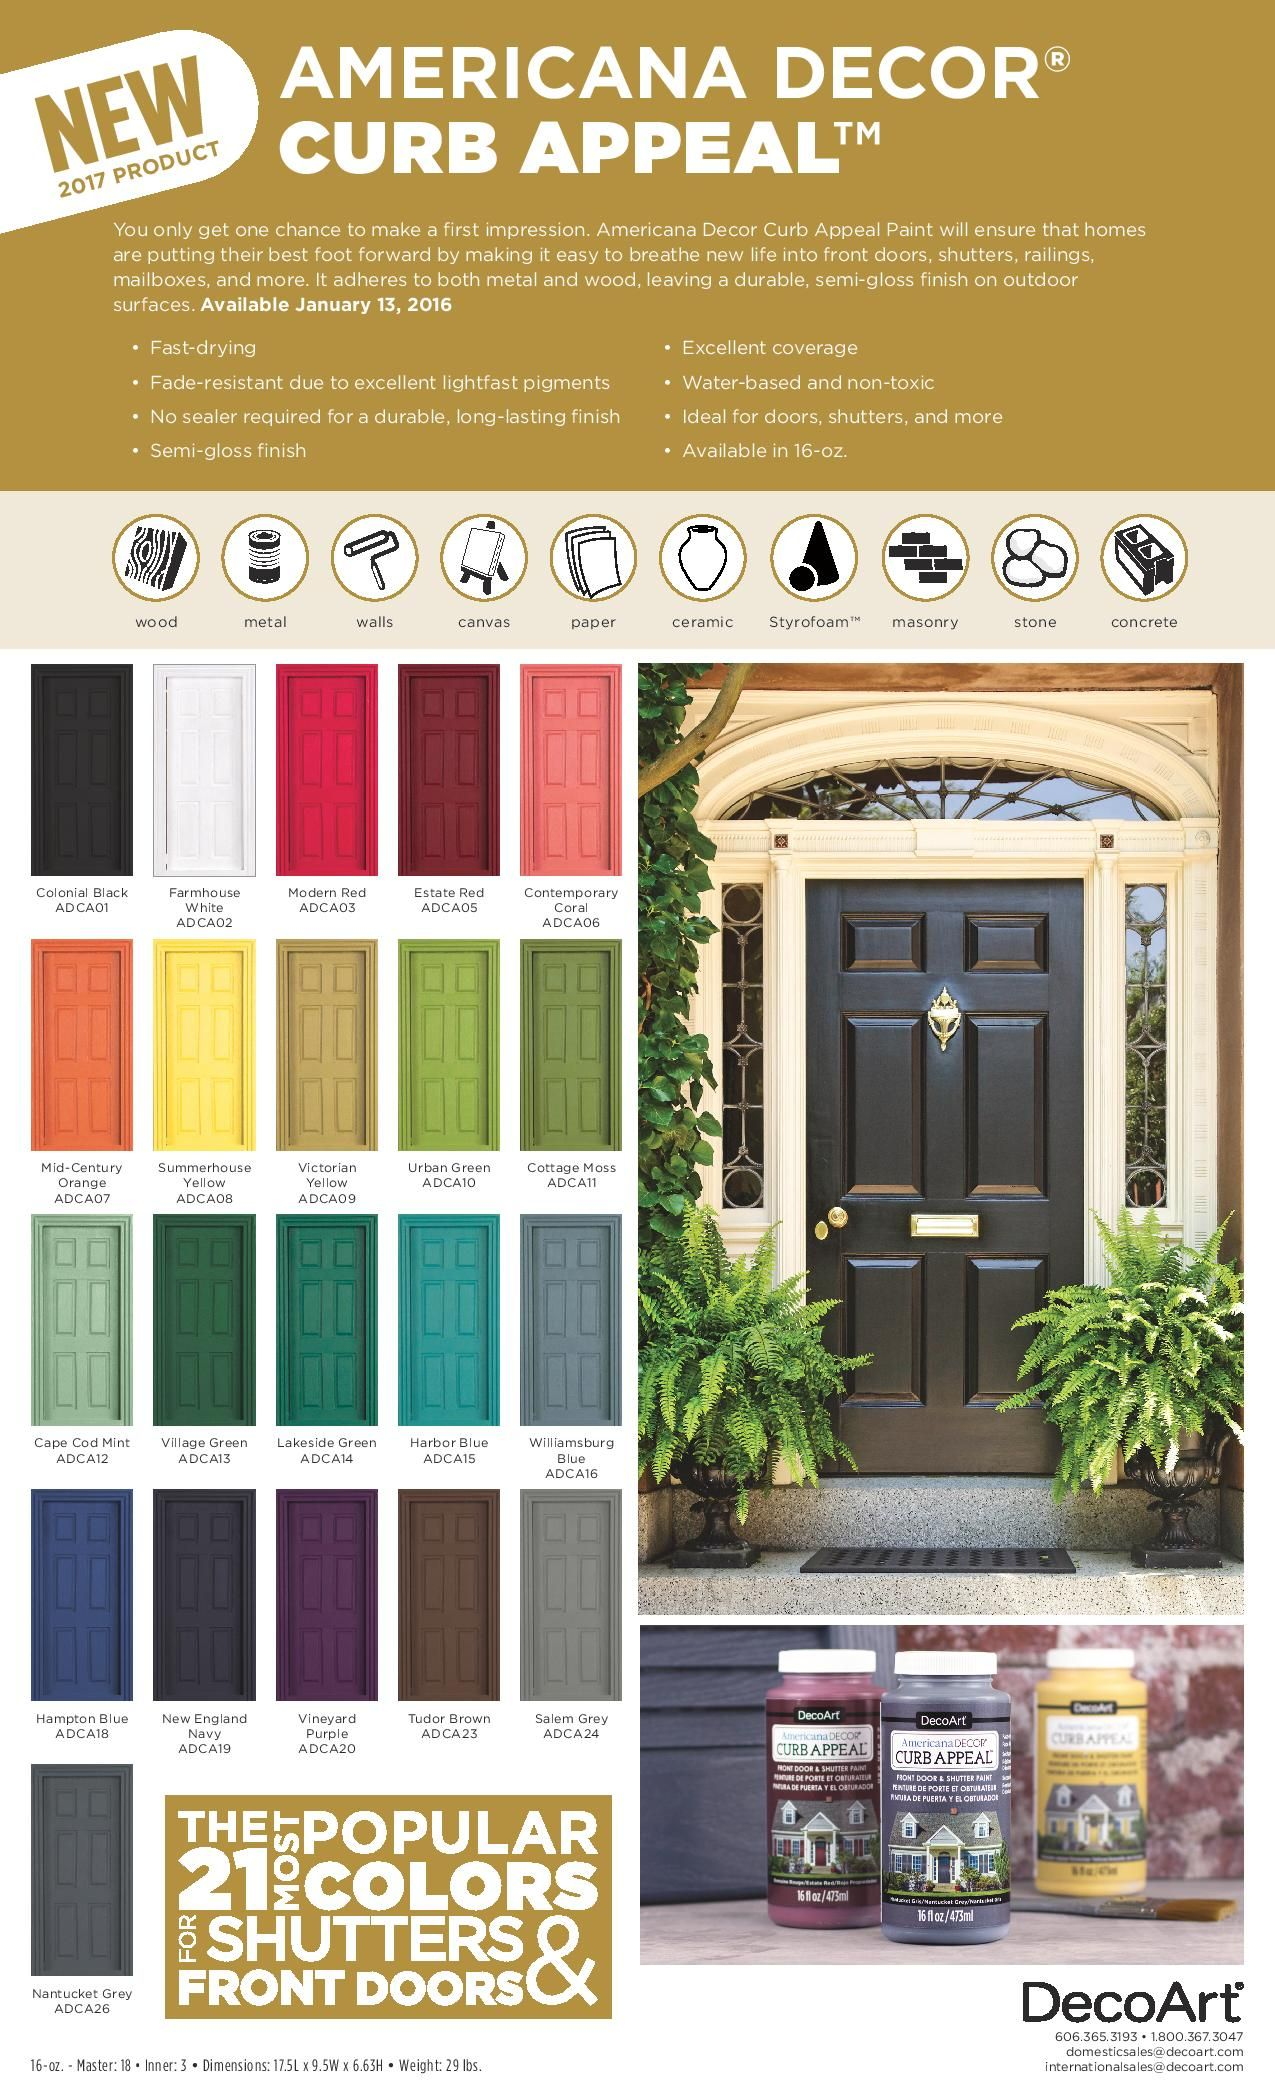 Loving These Bright Painted Coral Front Doors! So Easy To Make A Statement  With Bold Front Door Paint Choices Using @decoartu0027s Curb Appeal Paint.